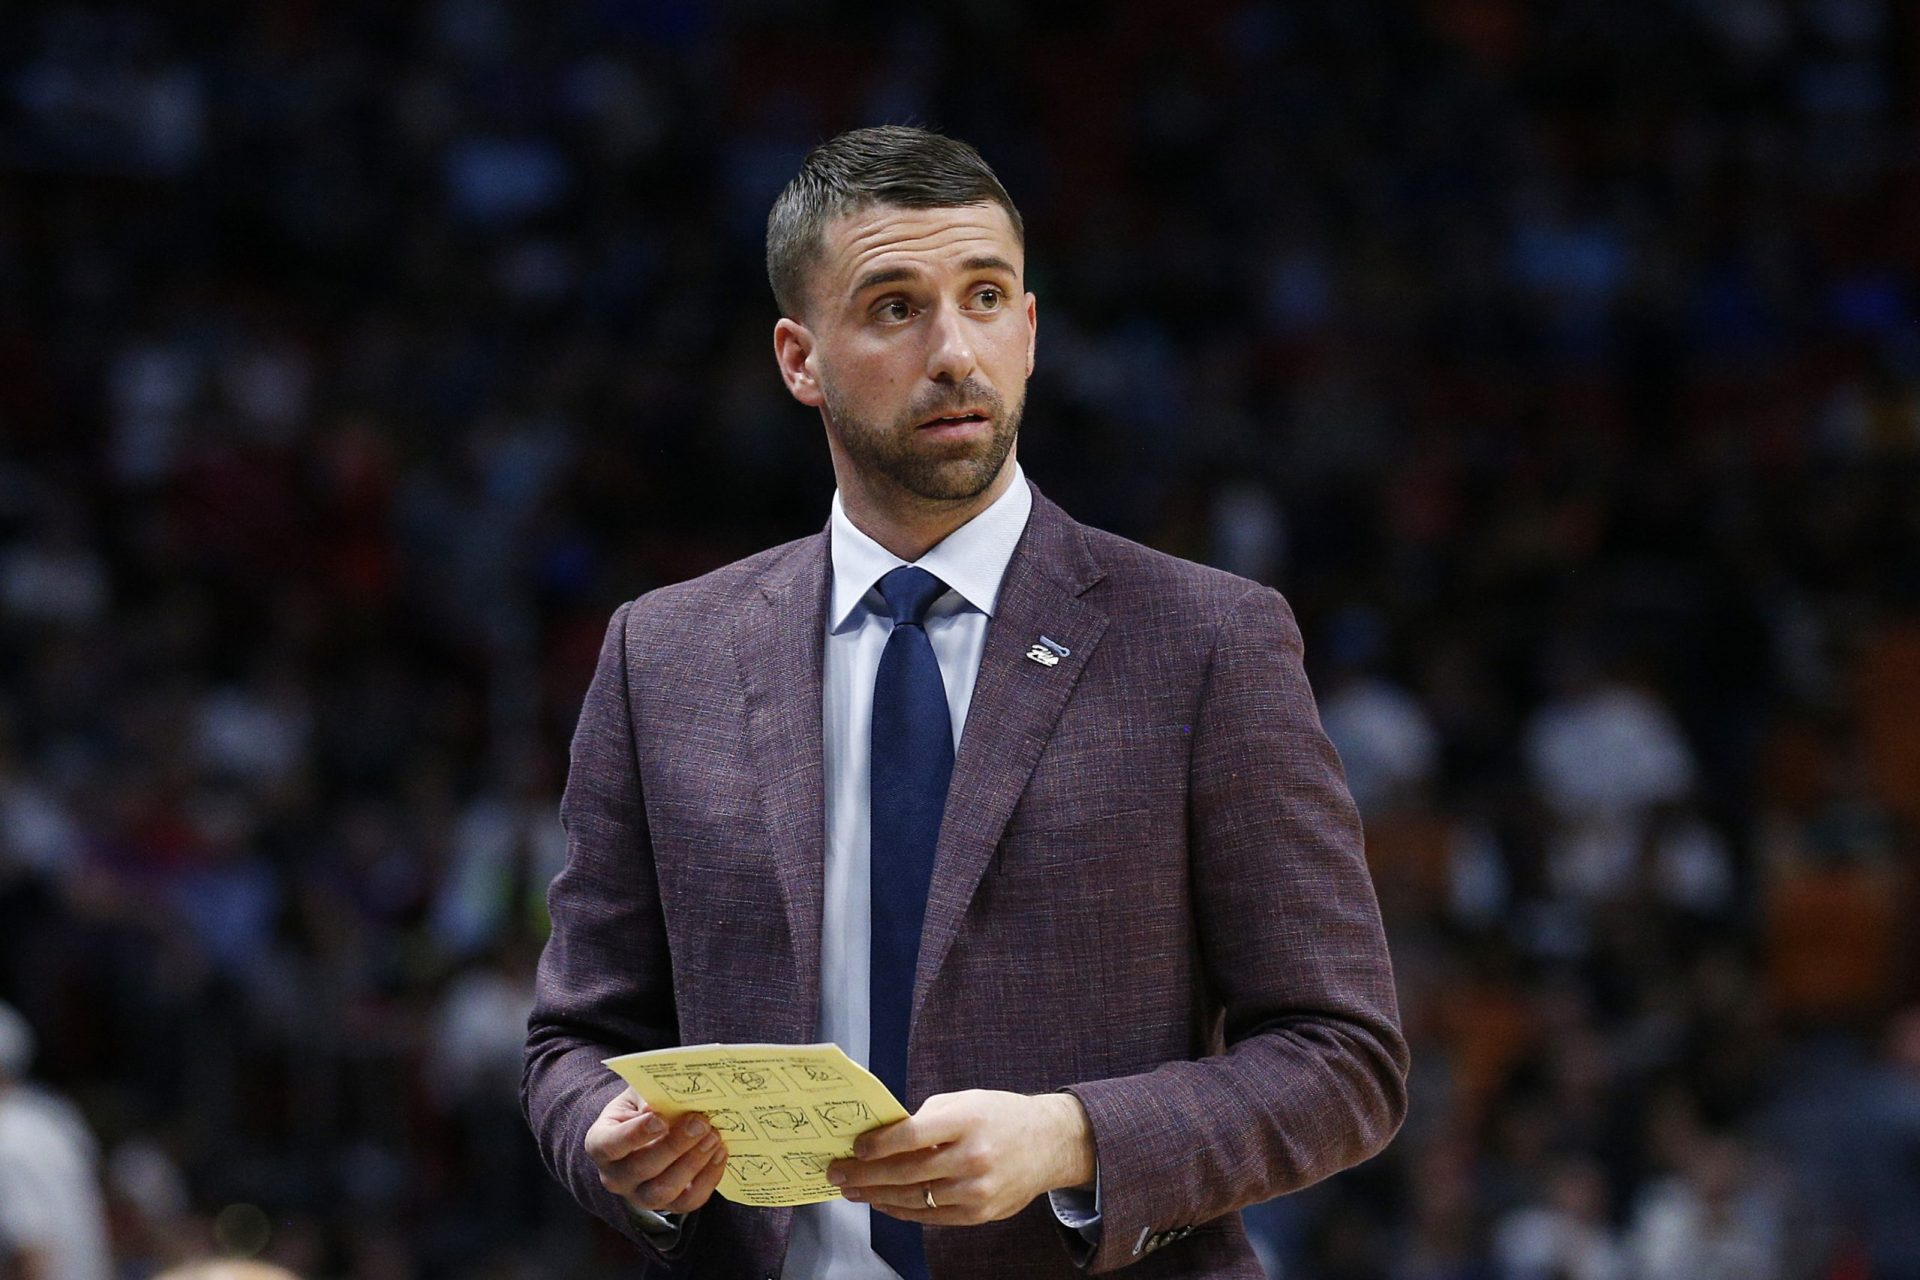 BREAKING: Timberwolves fire head coach Ryan Saunders after pitiful 7-24 record - THE SPORTS ROOM